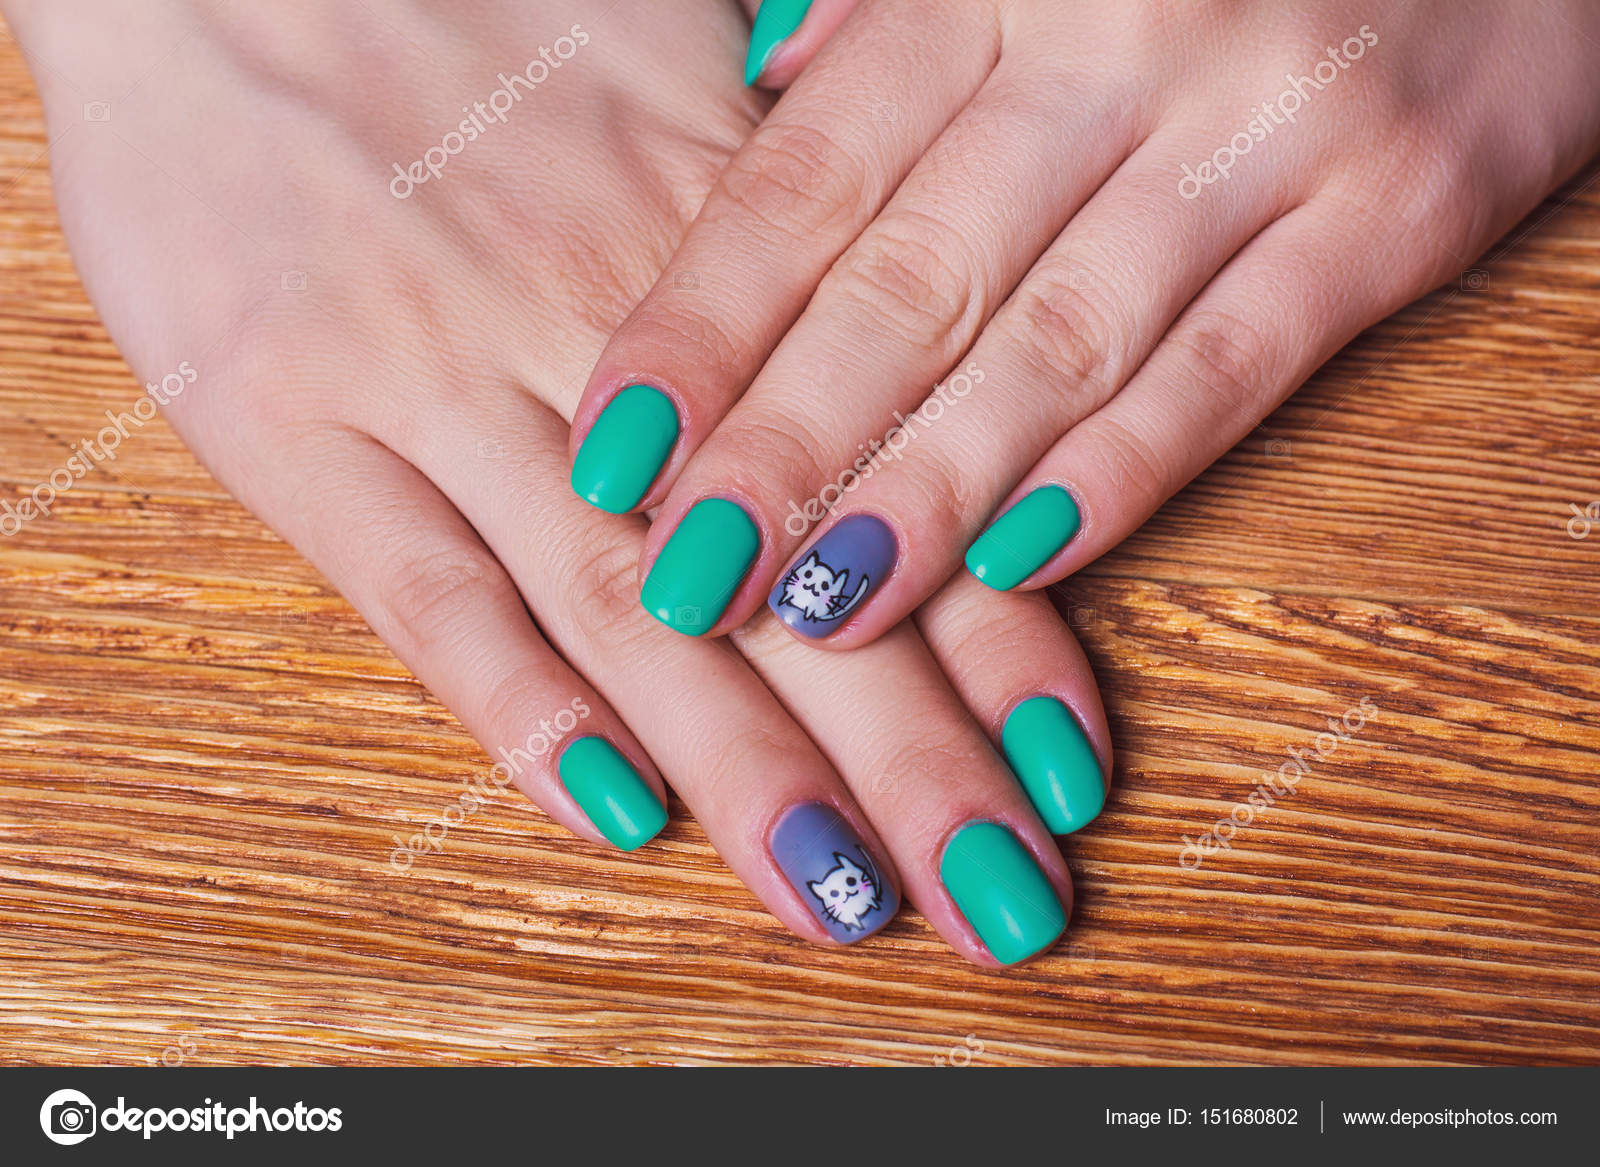 Teal and white nail designs